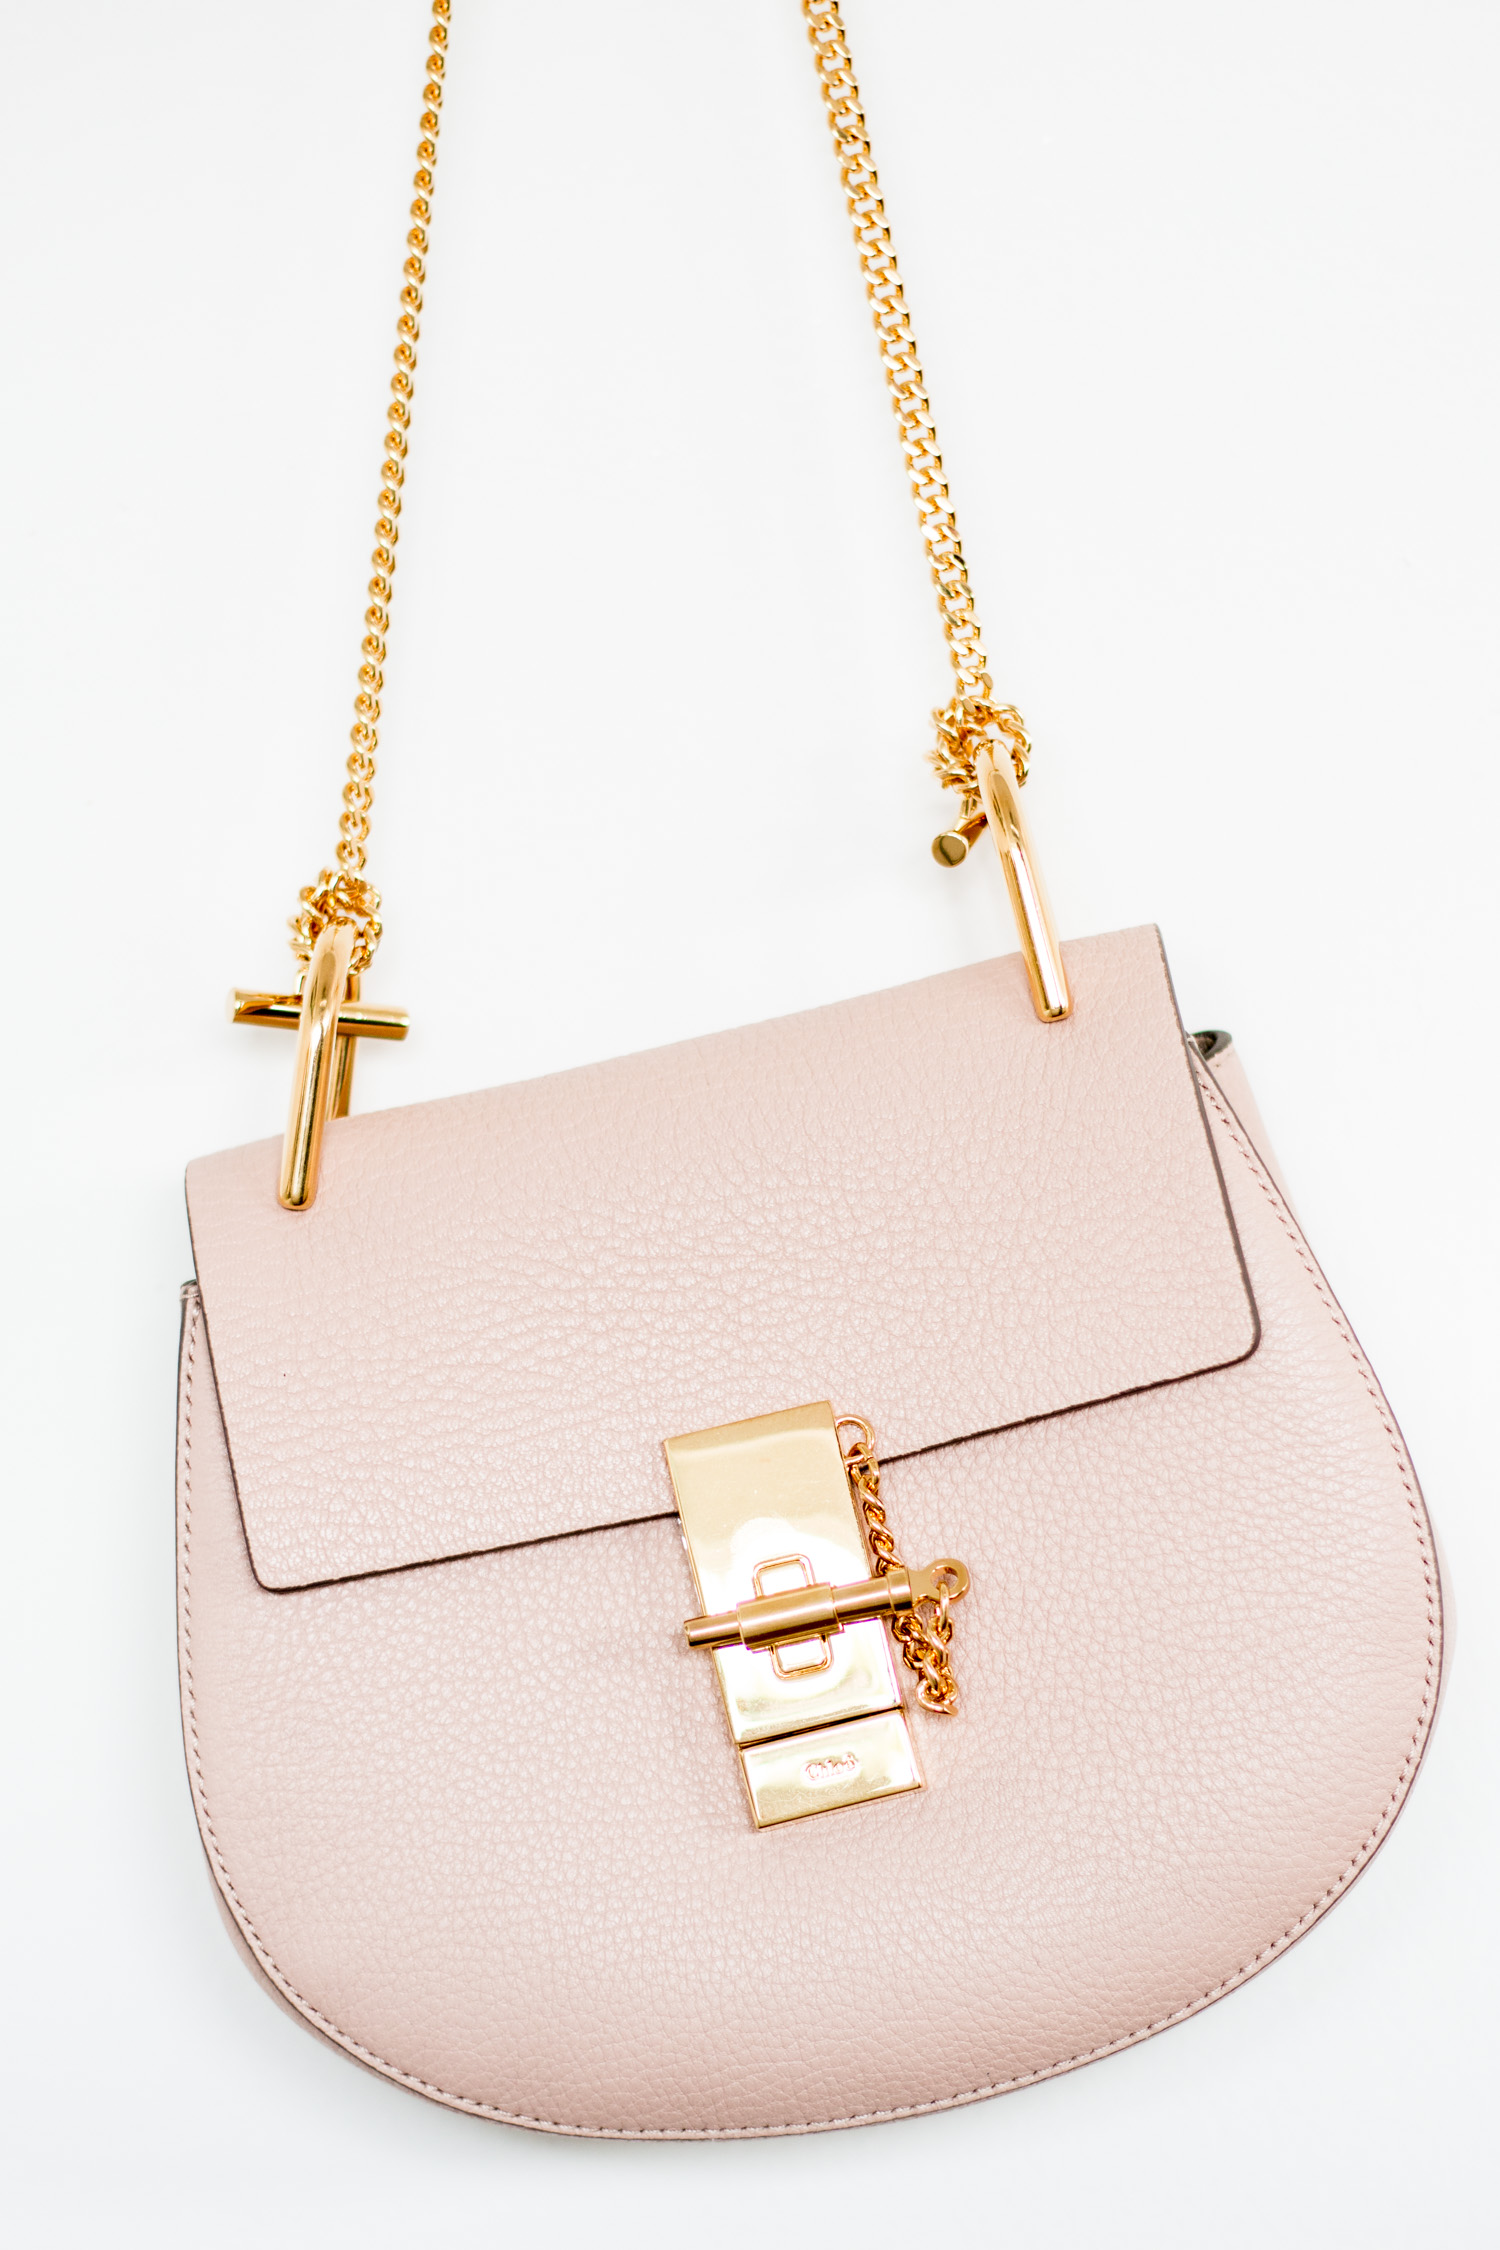 Chloe Drew Mini Bag in Cement Pink